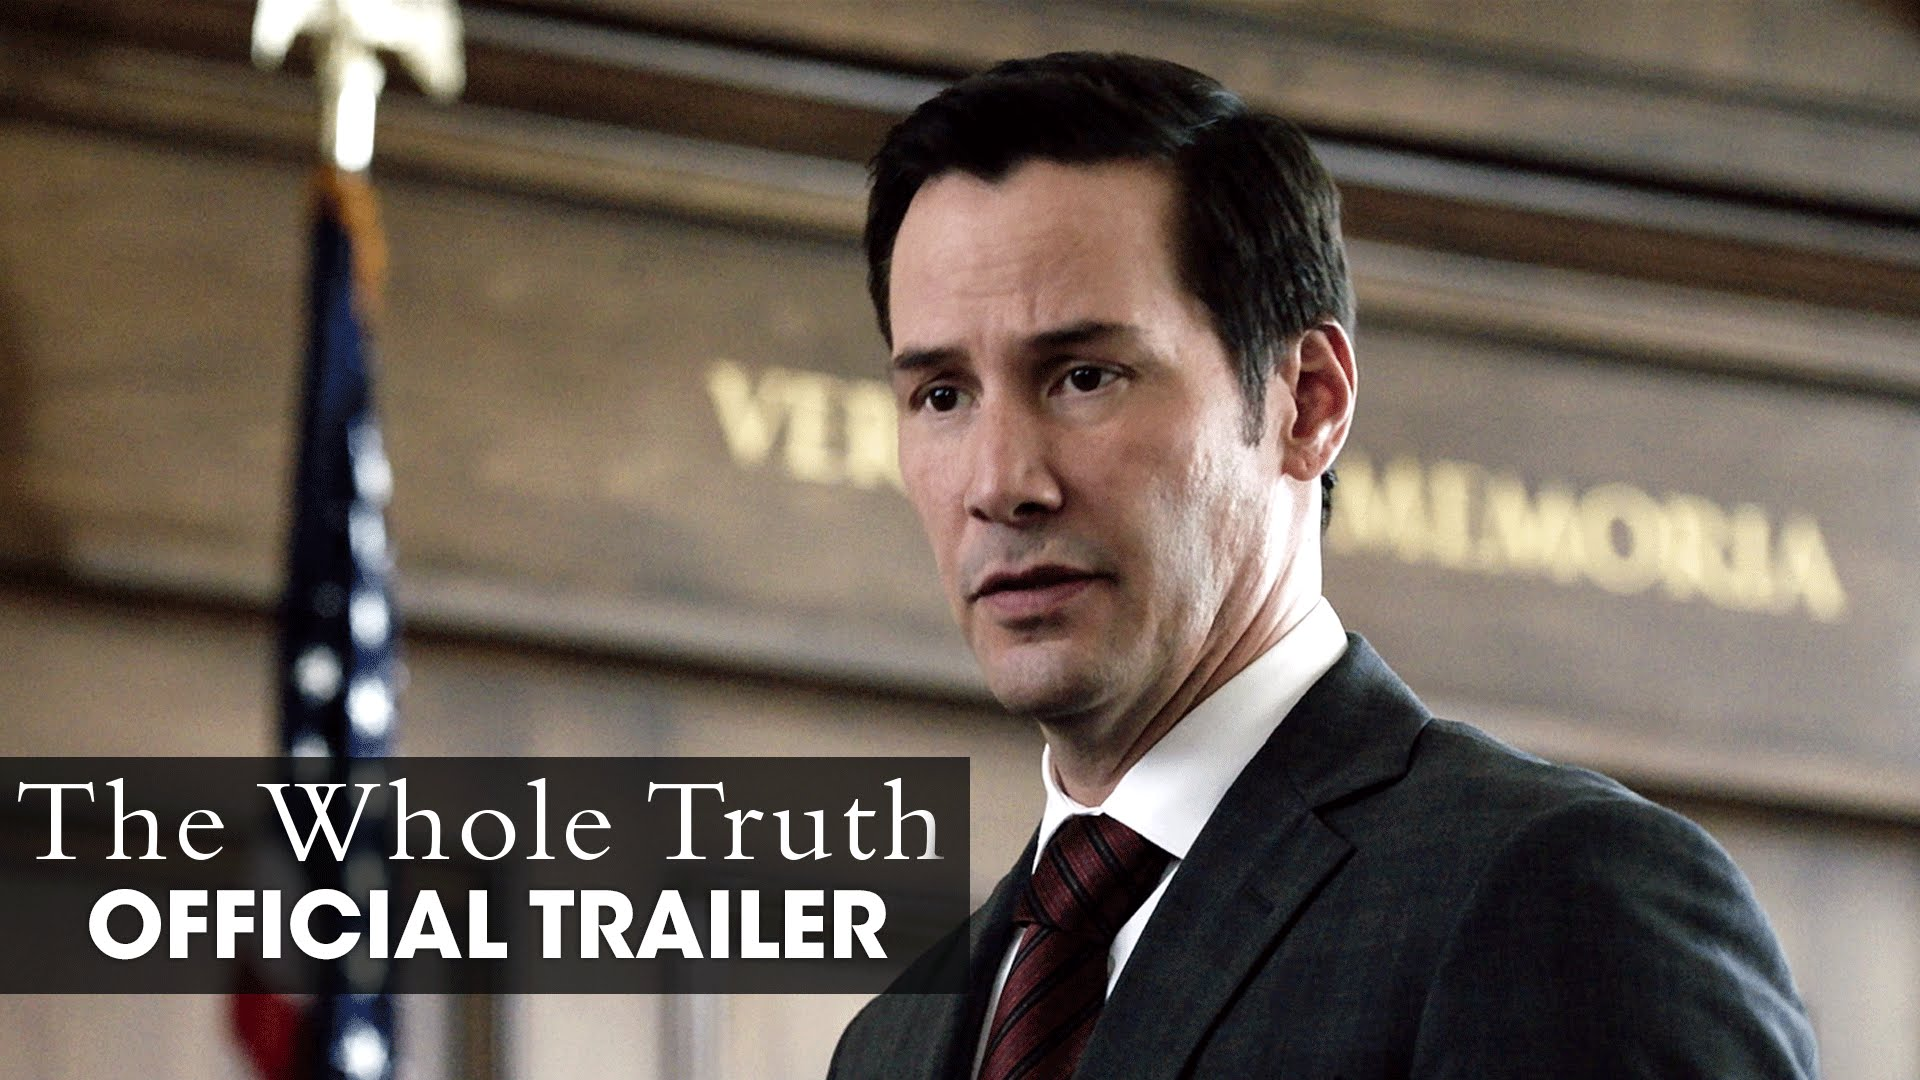 The Whole Truth (2016 Movie) – Official Trailer